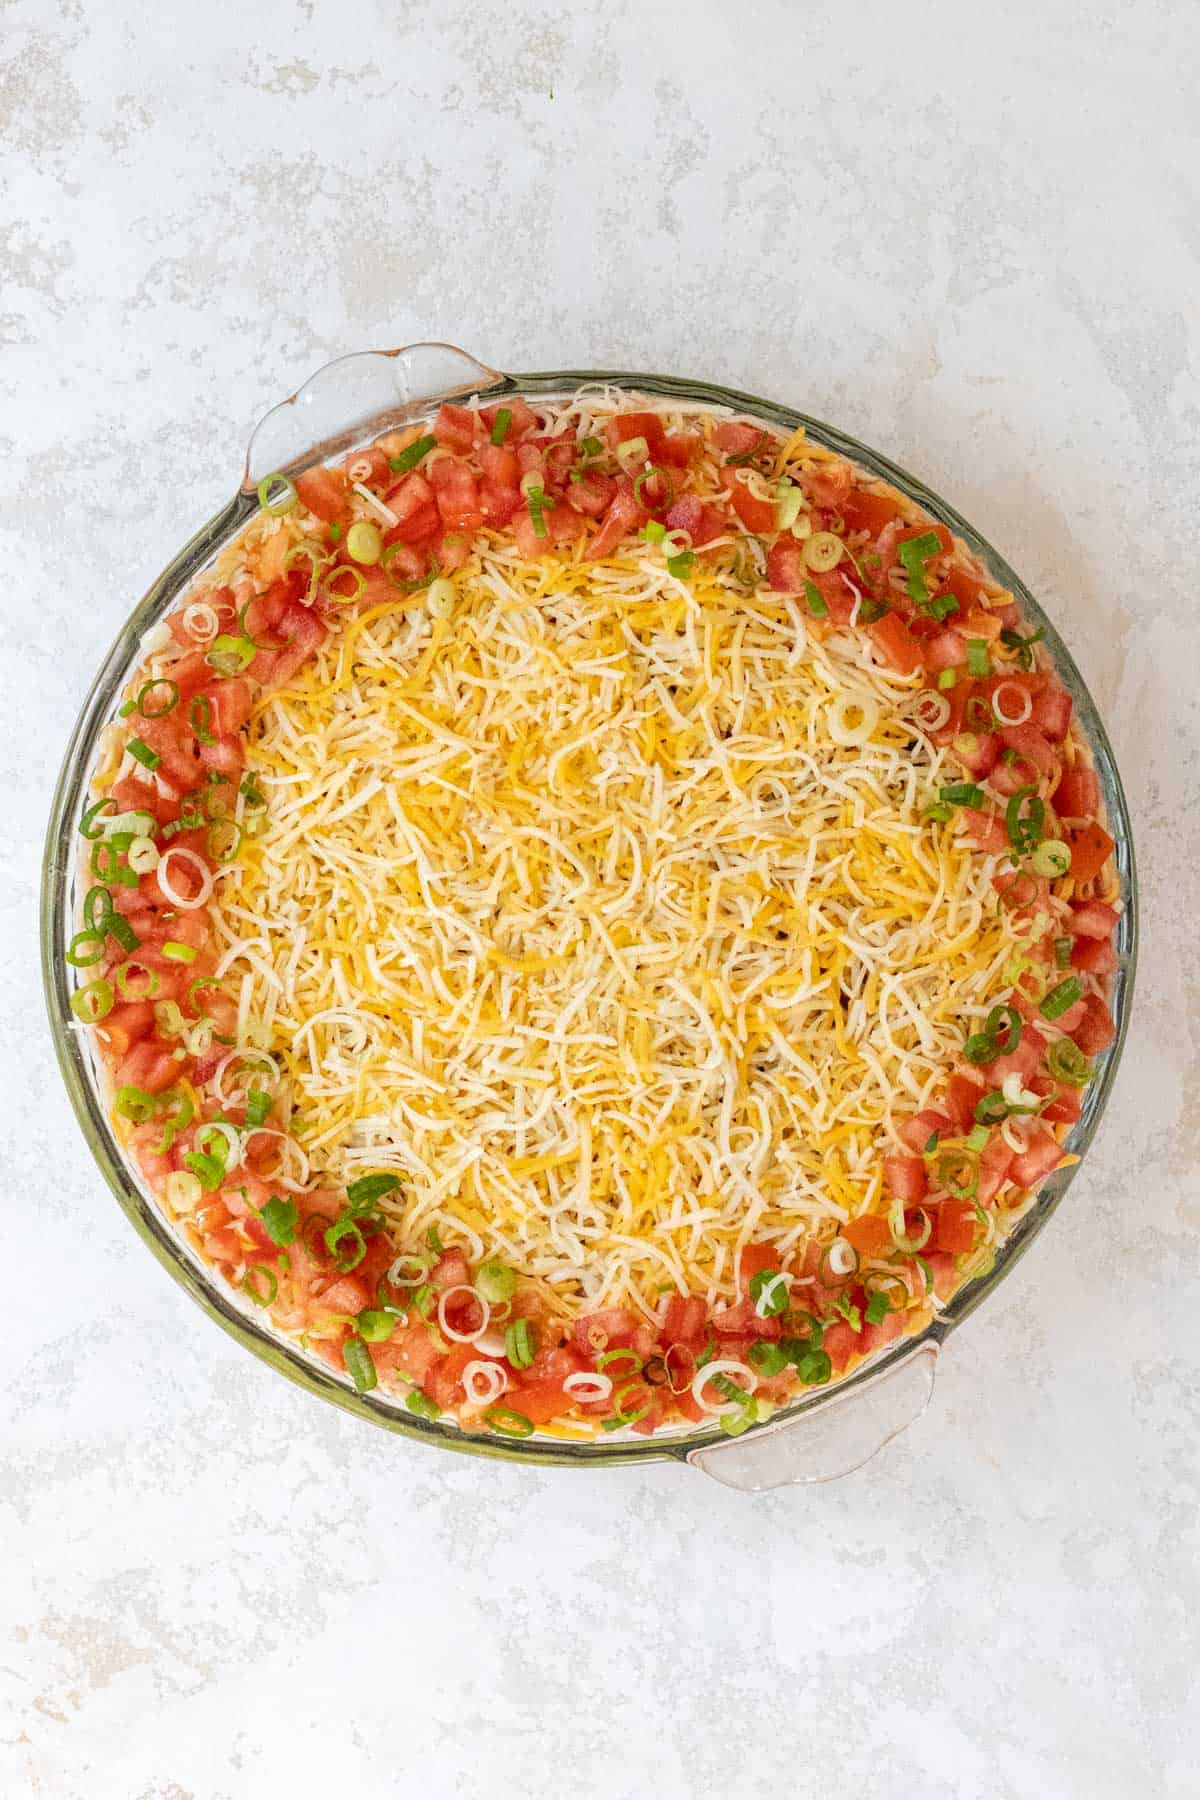 Chopped tomatoes and scallions on top of the shredded cheese and around the perimeter of a large pie dish.